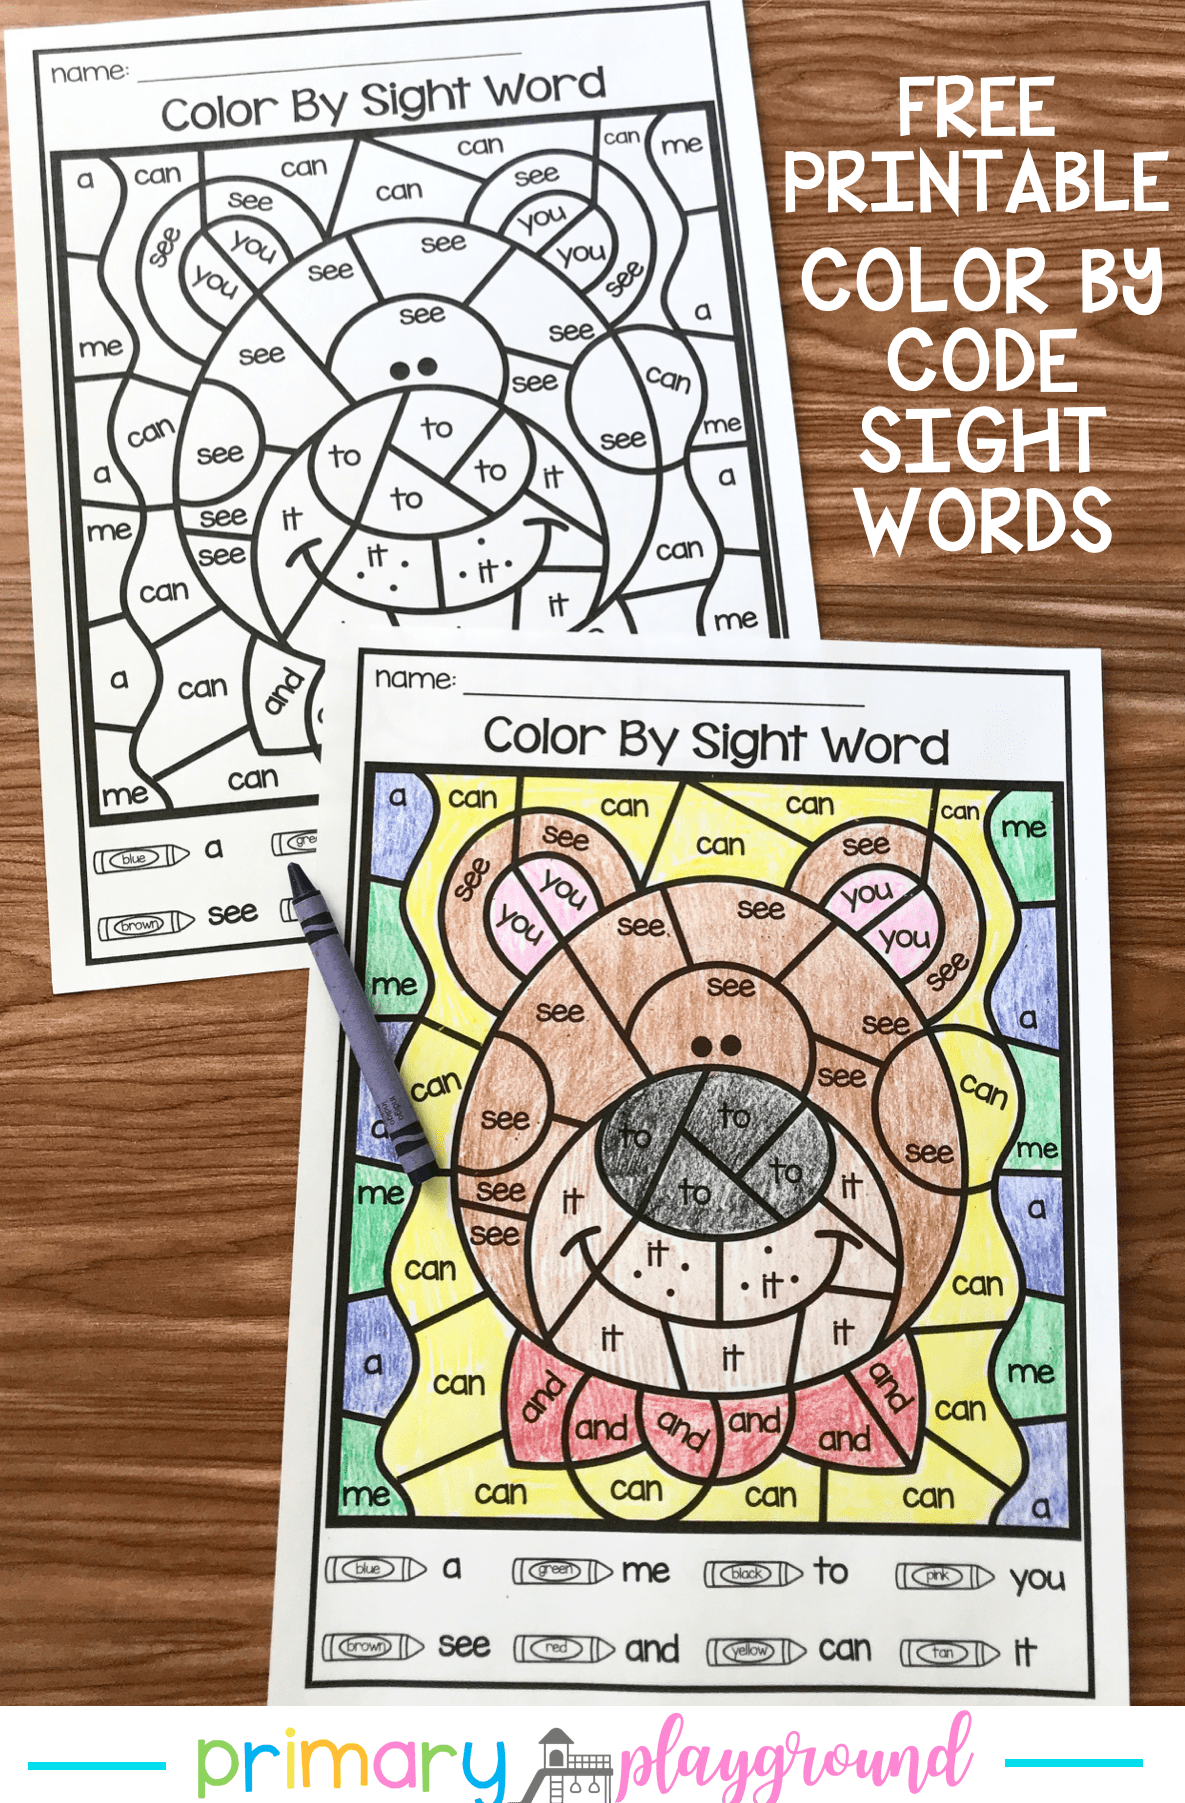 Free Printable Color By Code Sight Words